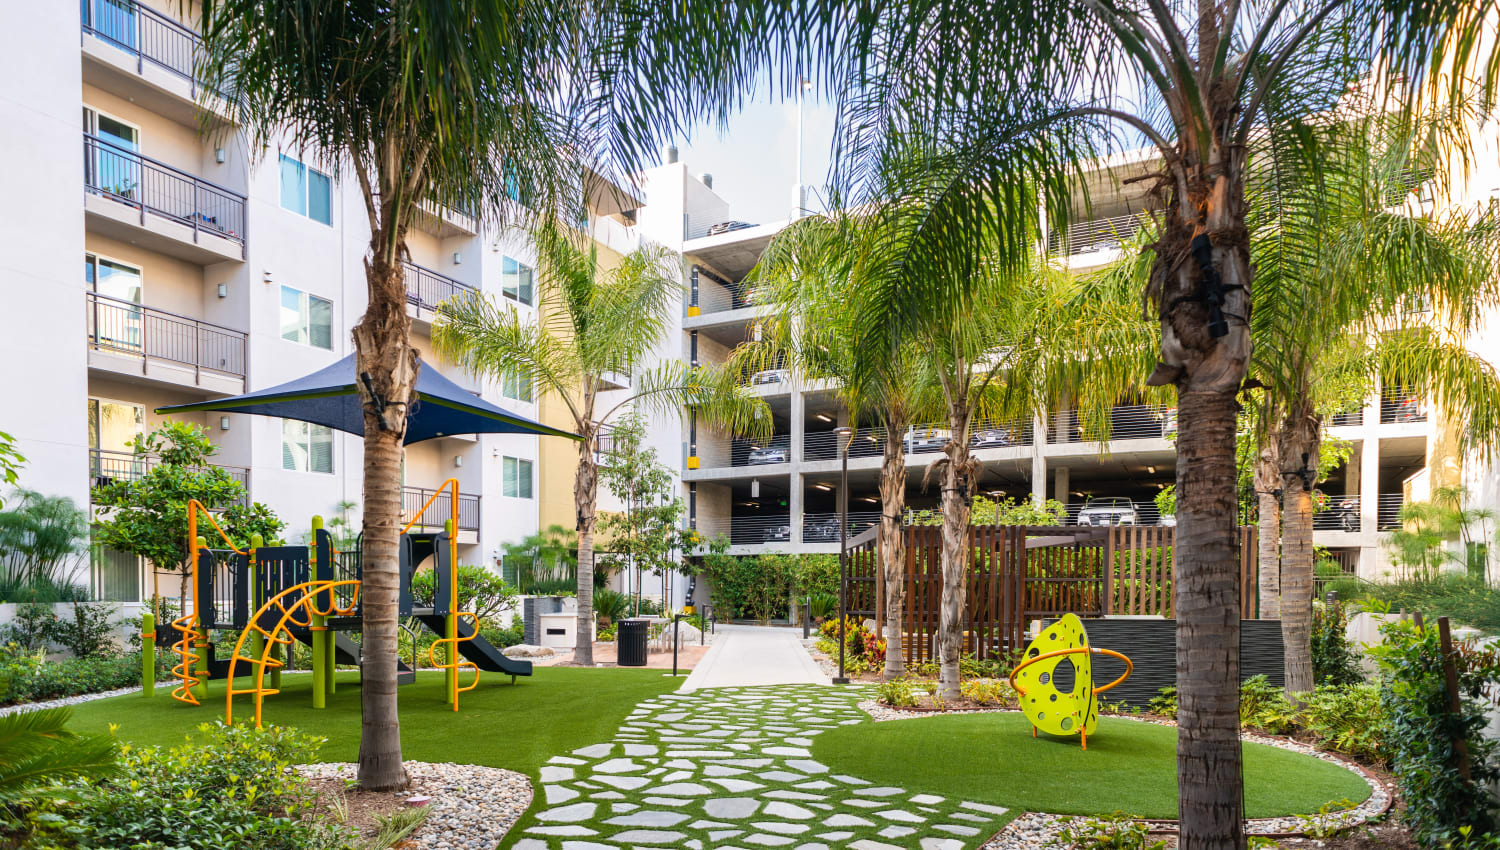 Professionally maintained landscaping at an exterior courtyard at Fusion Apartments in Irvine, California